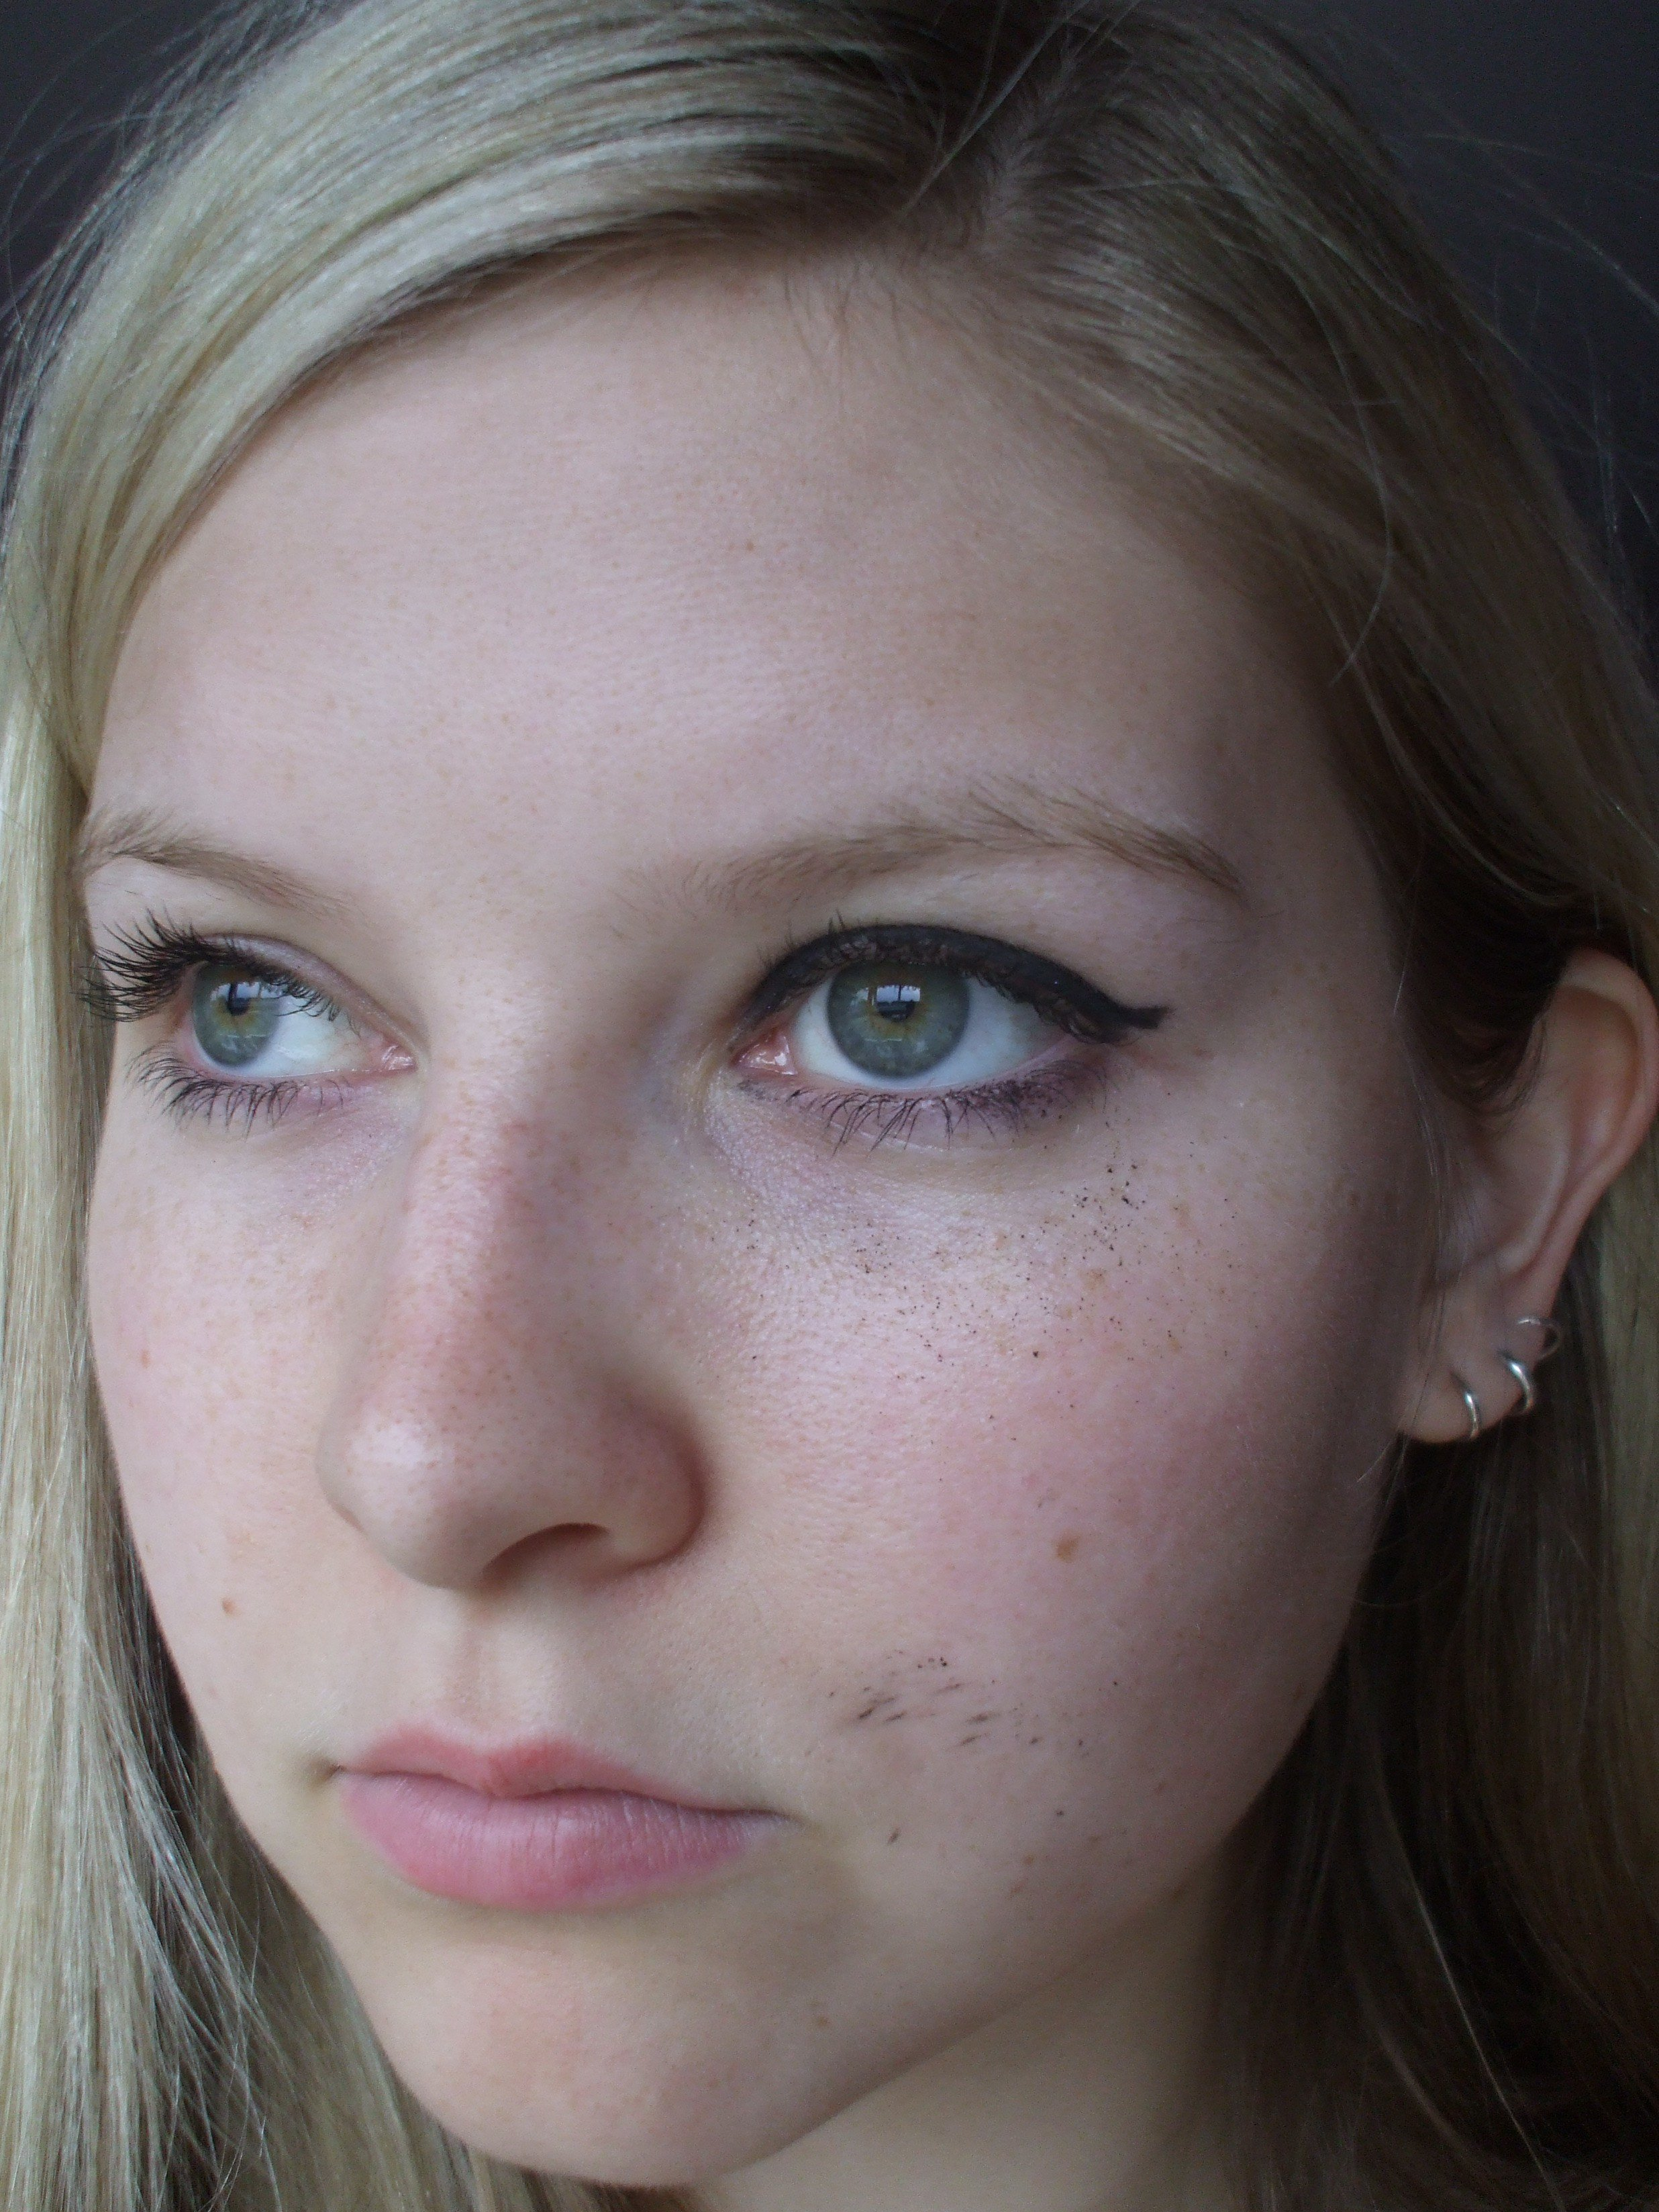 Best Review Revlon Bedroom Eyes Powder Liner In Fishnet Jet With Pictures